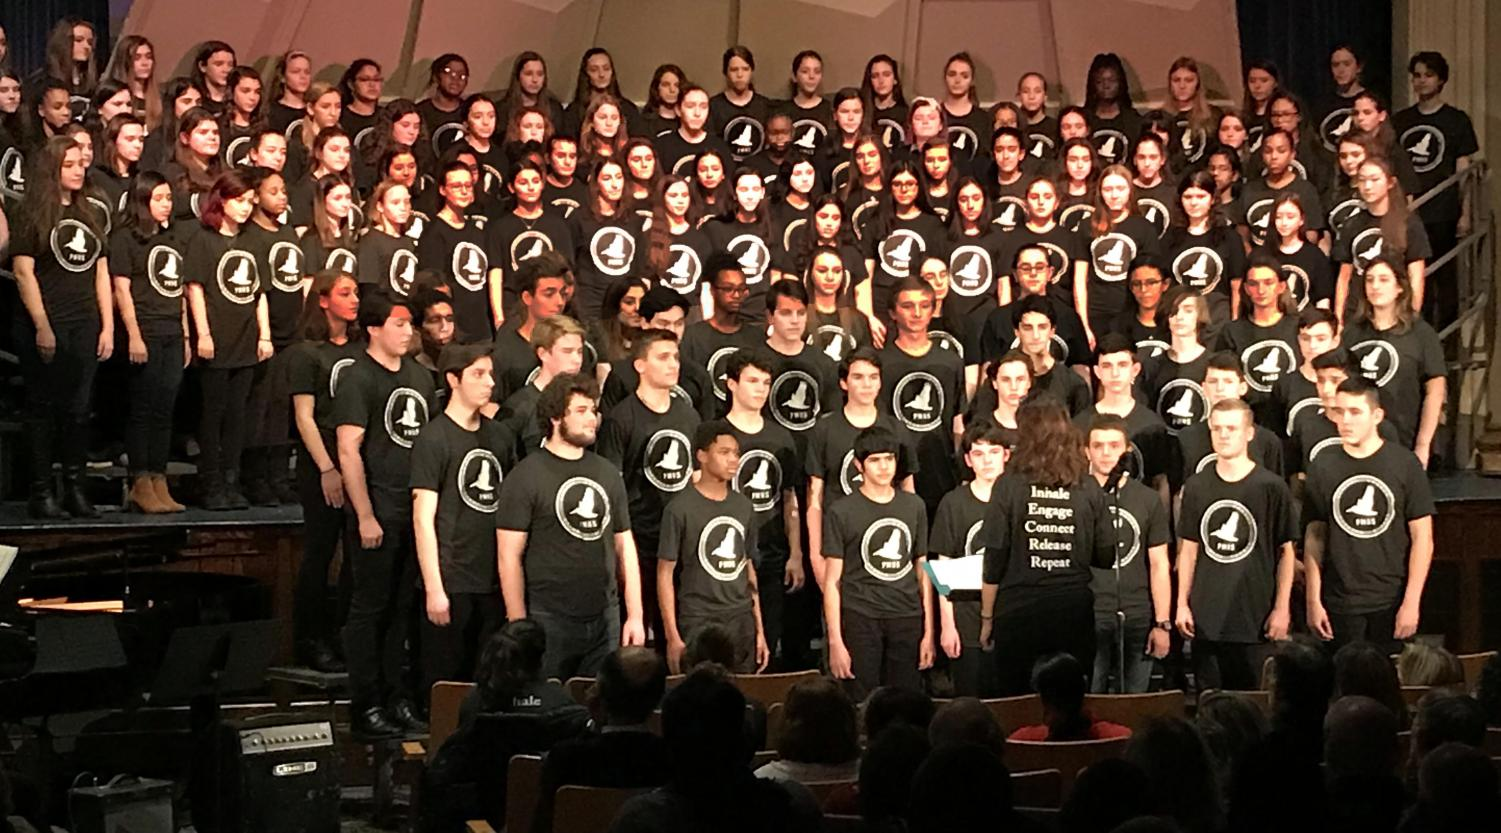 Choral Director Mrs. Maria Abeshouse leads the choir in a program of pop and Broadway songs at the fundraiser.